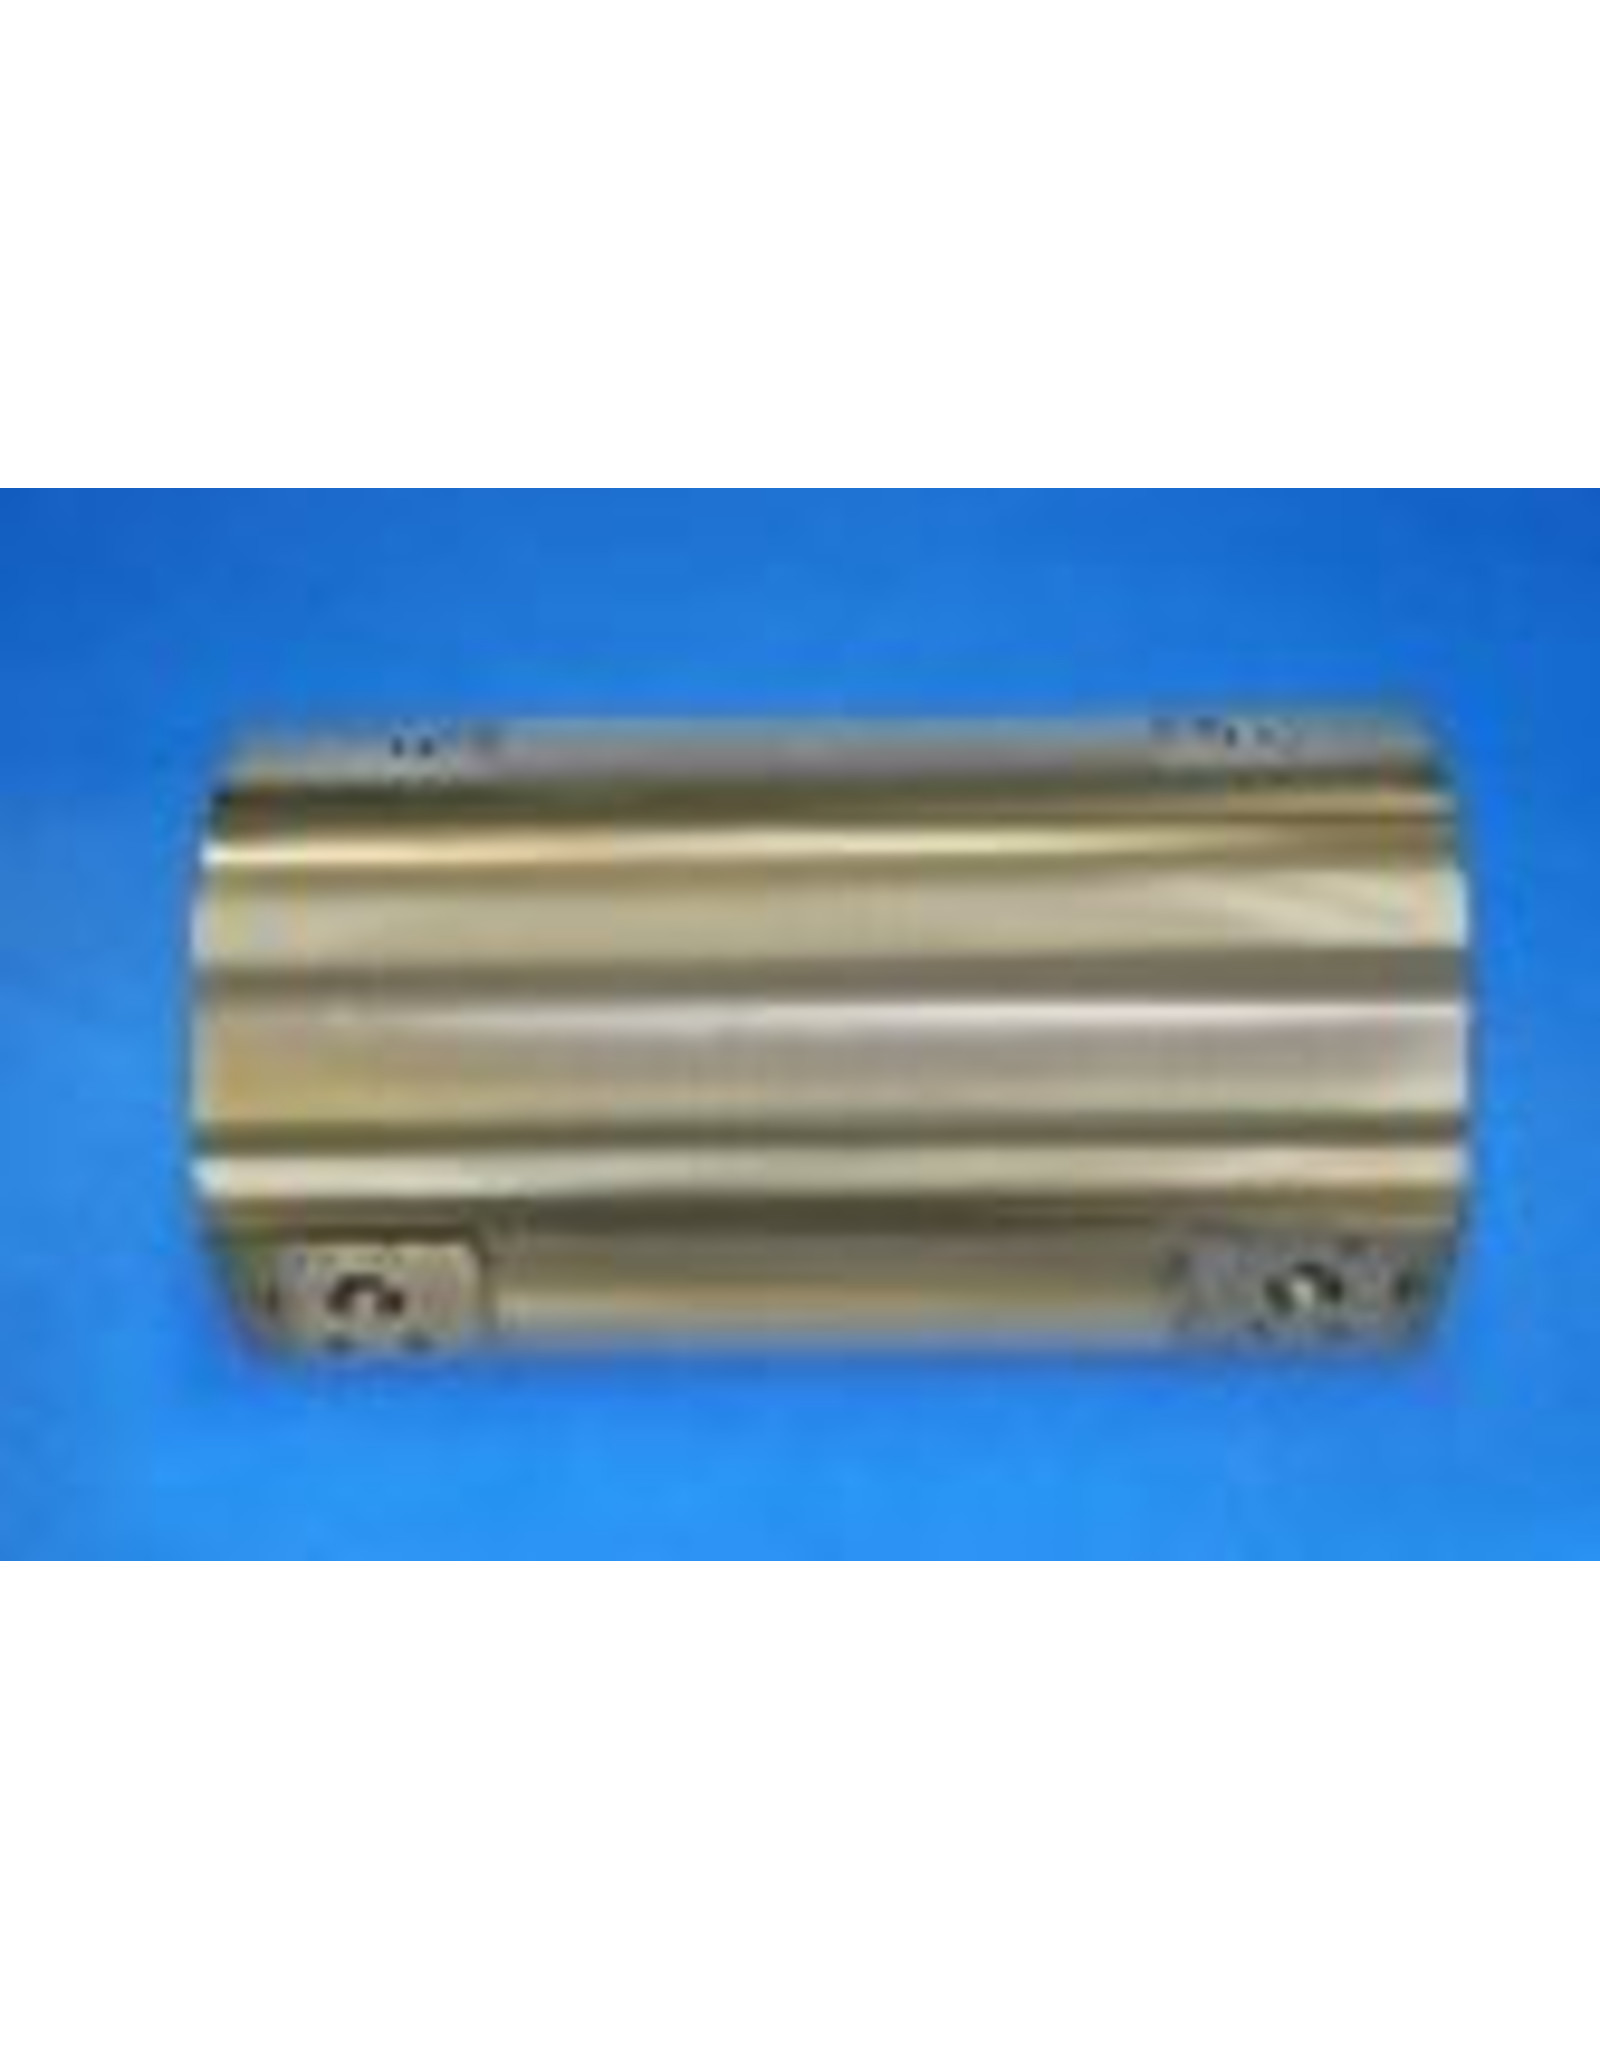 KMT Style Hydraulic Cylinder, 100S